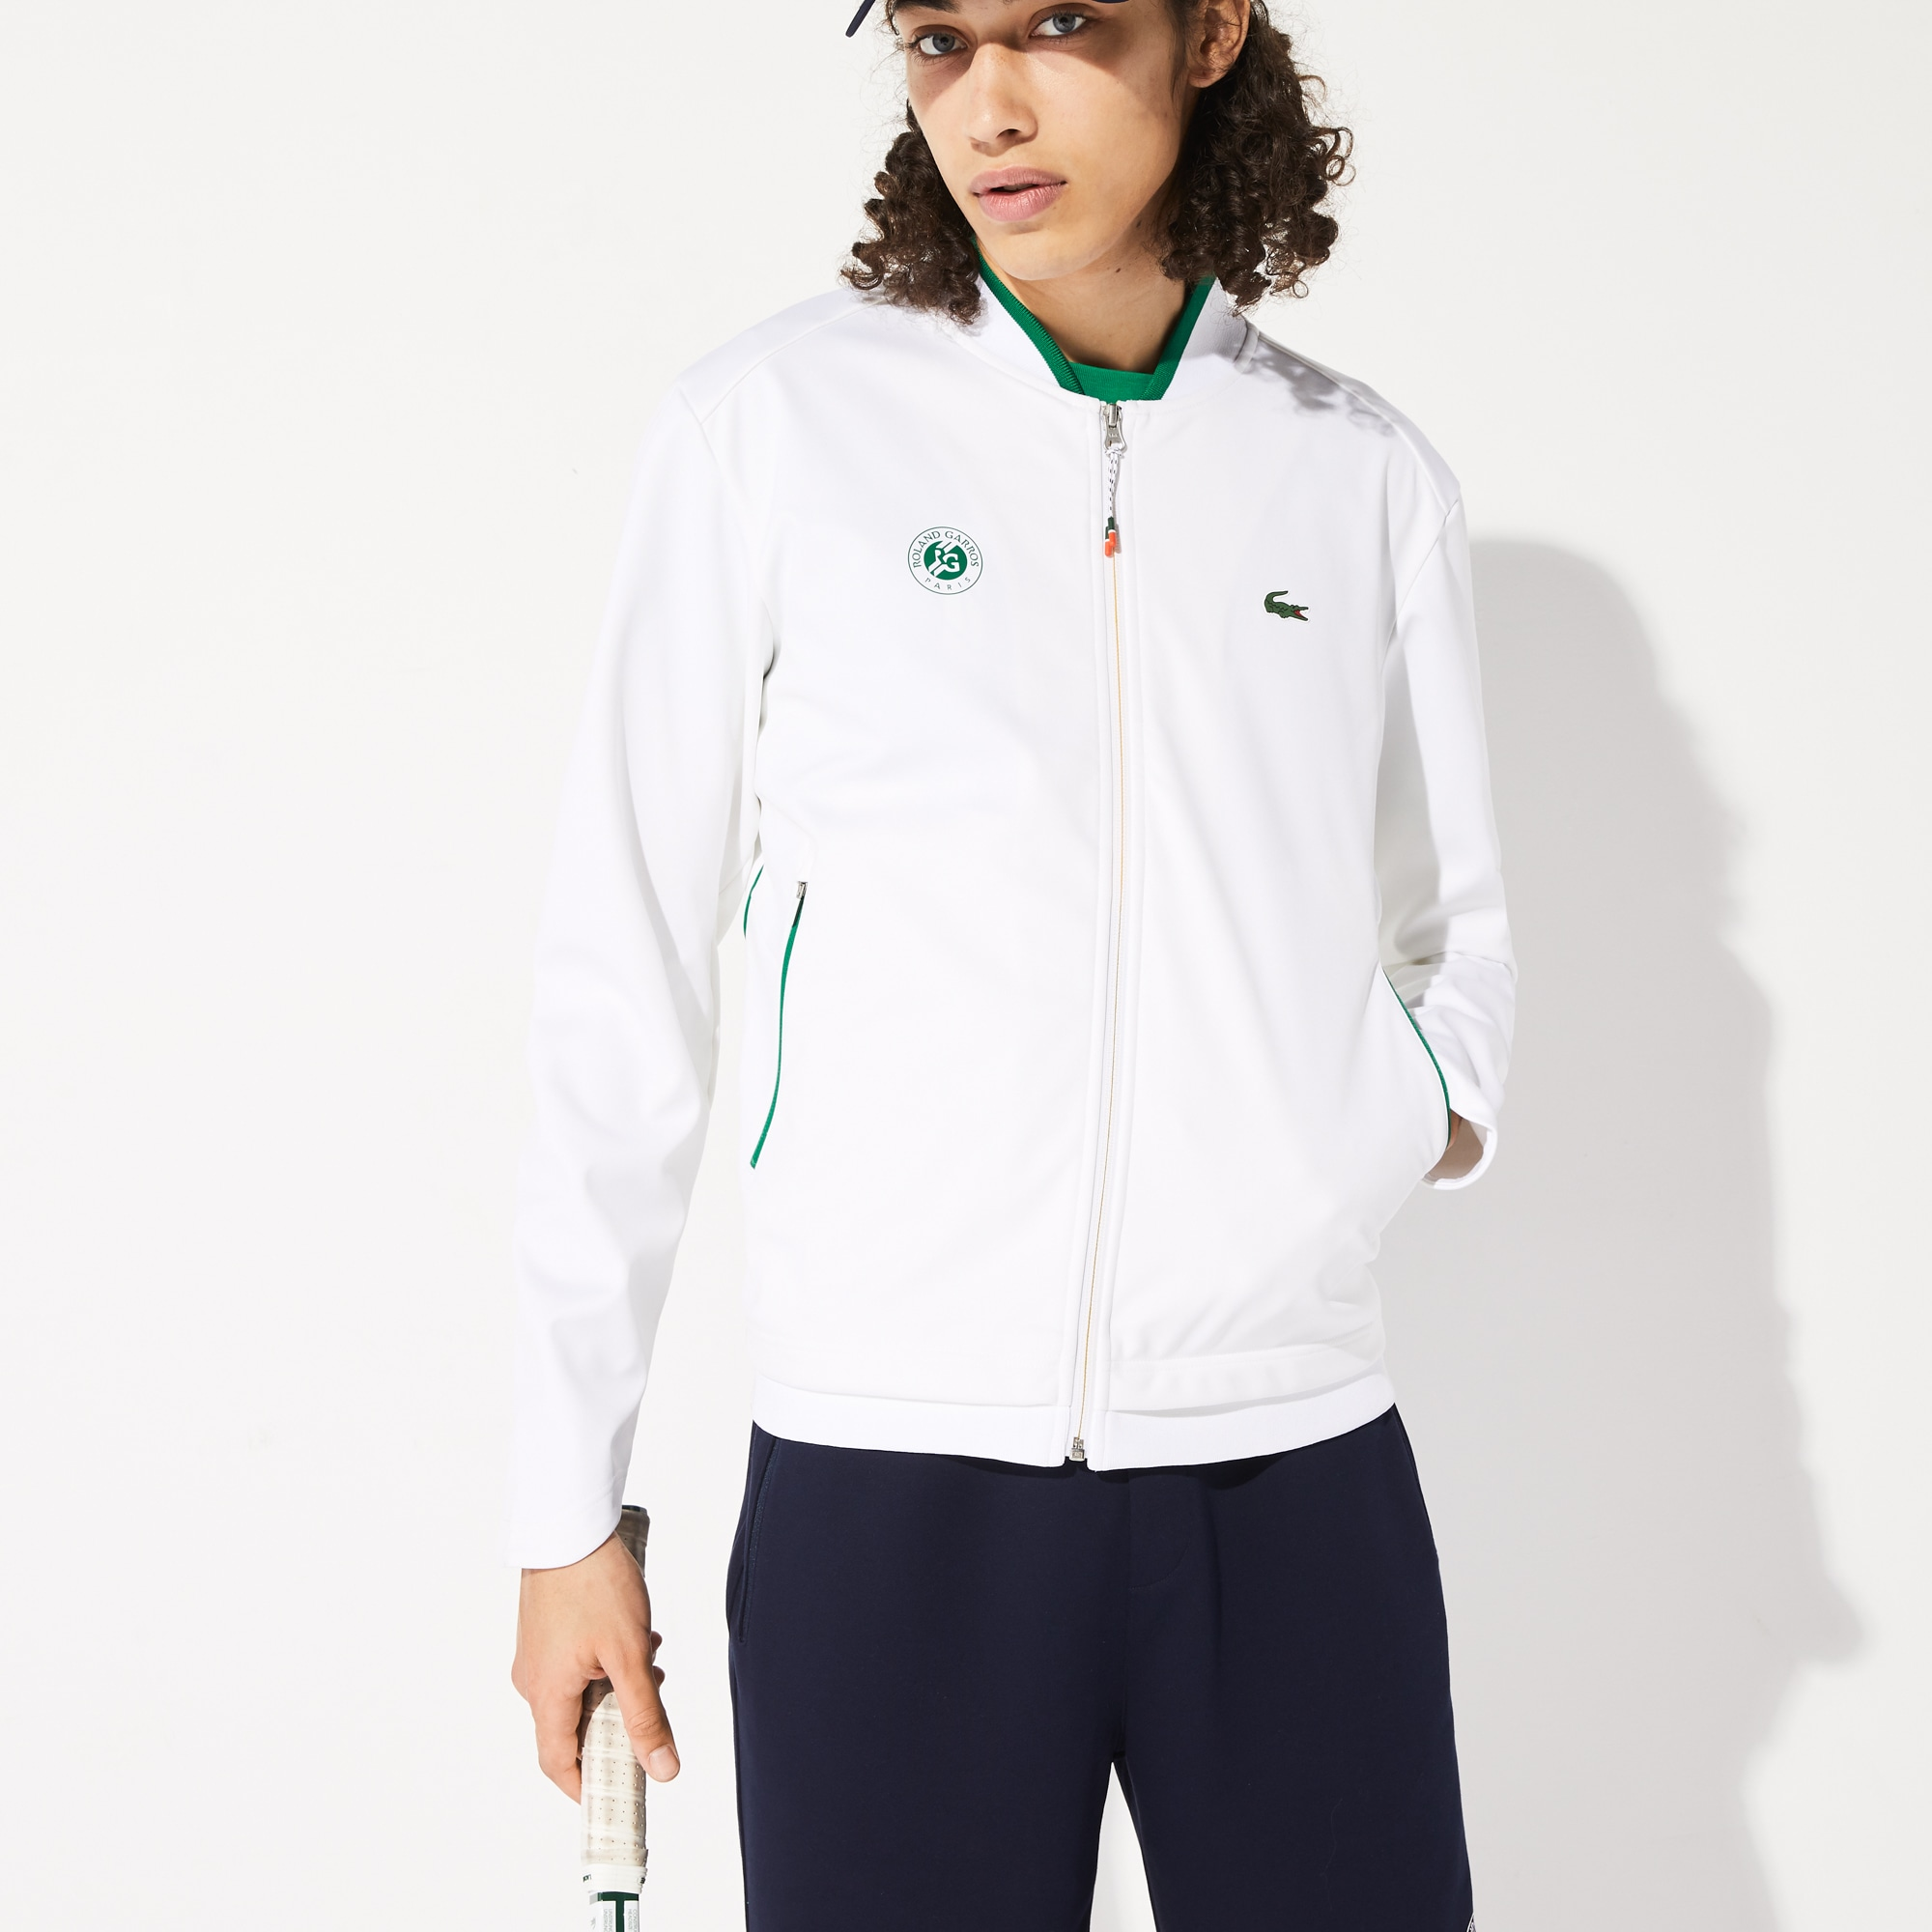 라코스테 스포츠 롤랑가로스 자켓 Lacoste Mens SPORT Roland Garros Pique Zip-Up Jacket